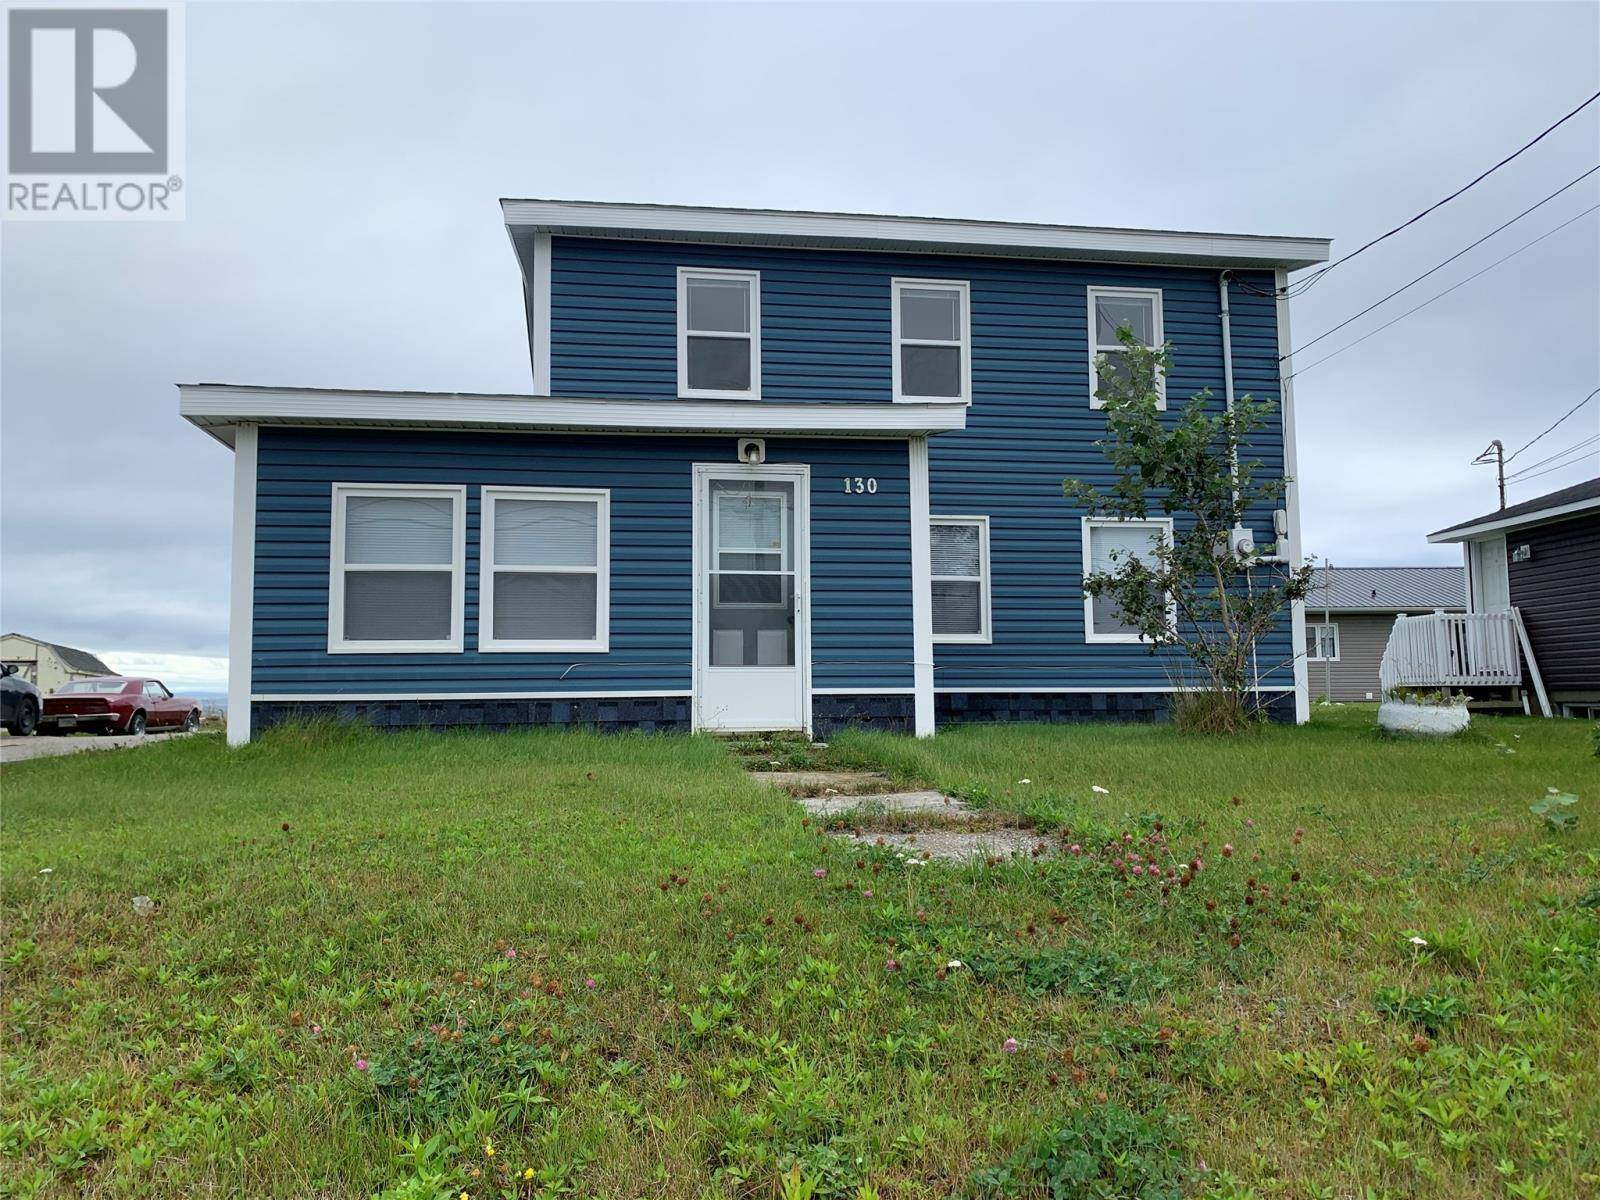 House for sale at 130 West St Stephenville Newfoundland - MLS: 1202396